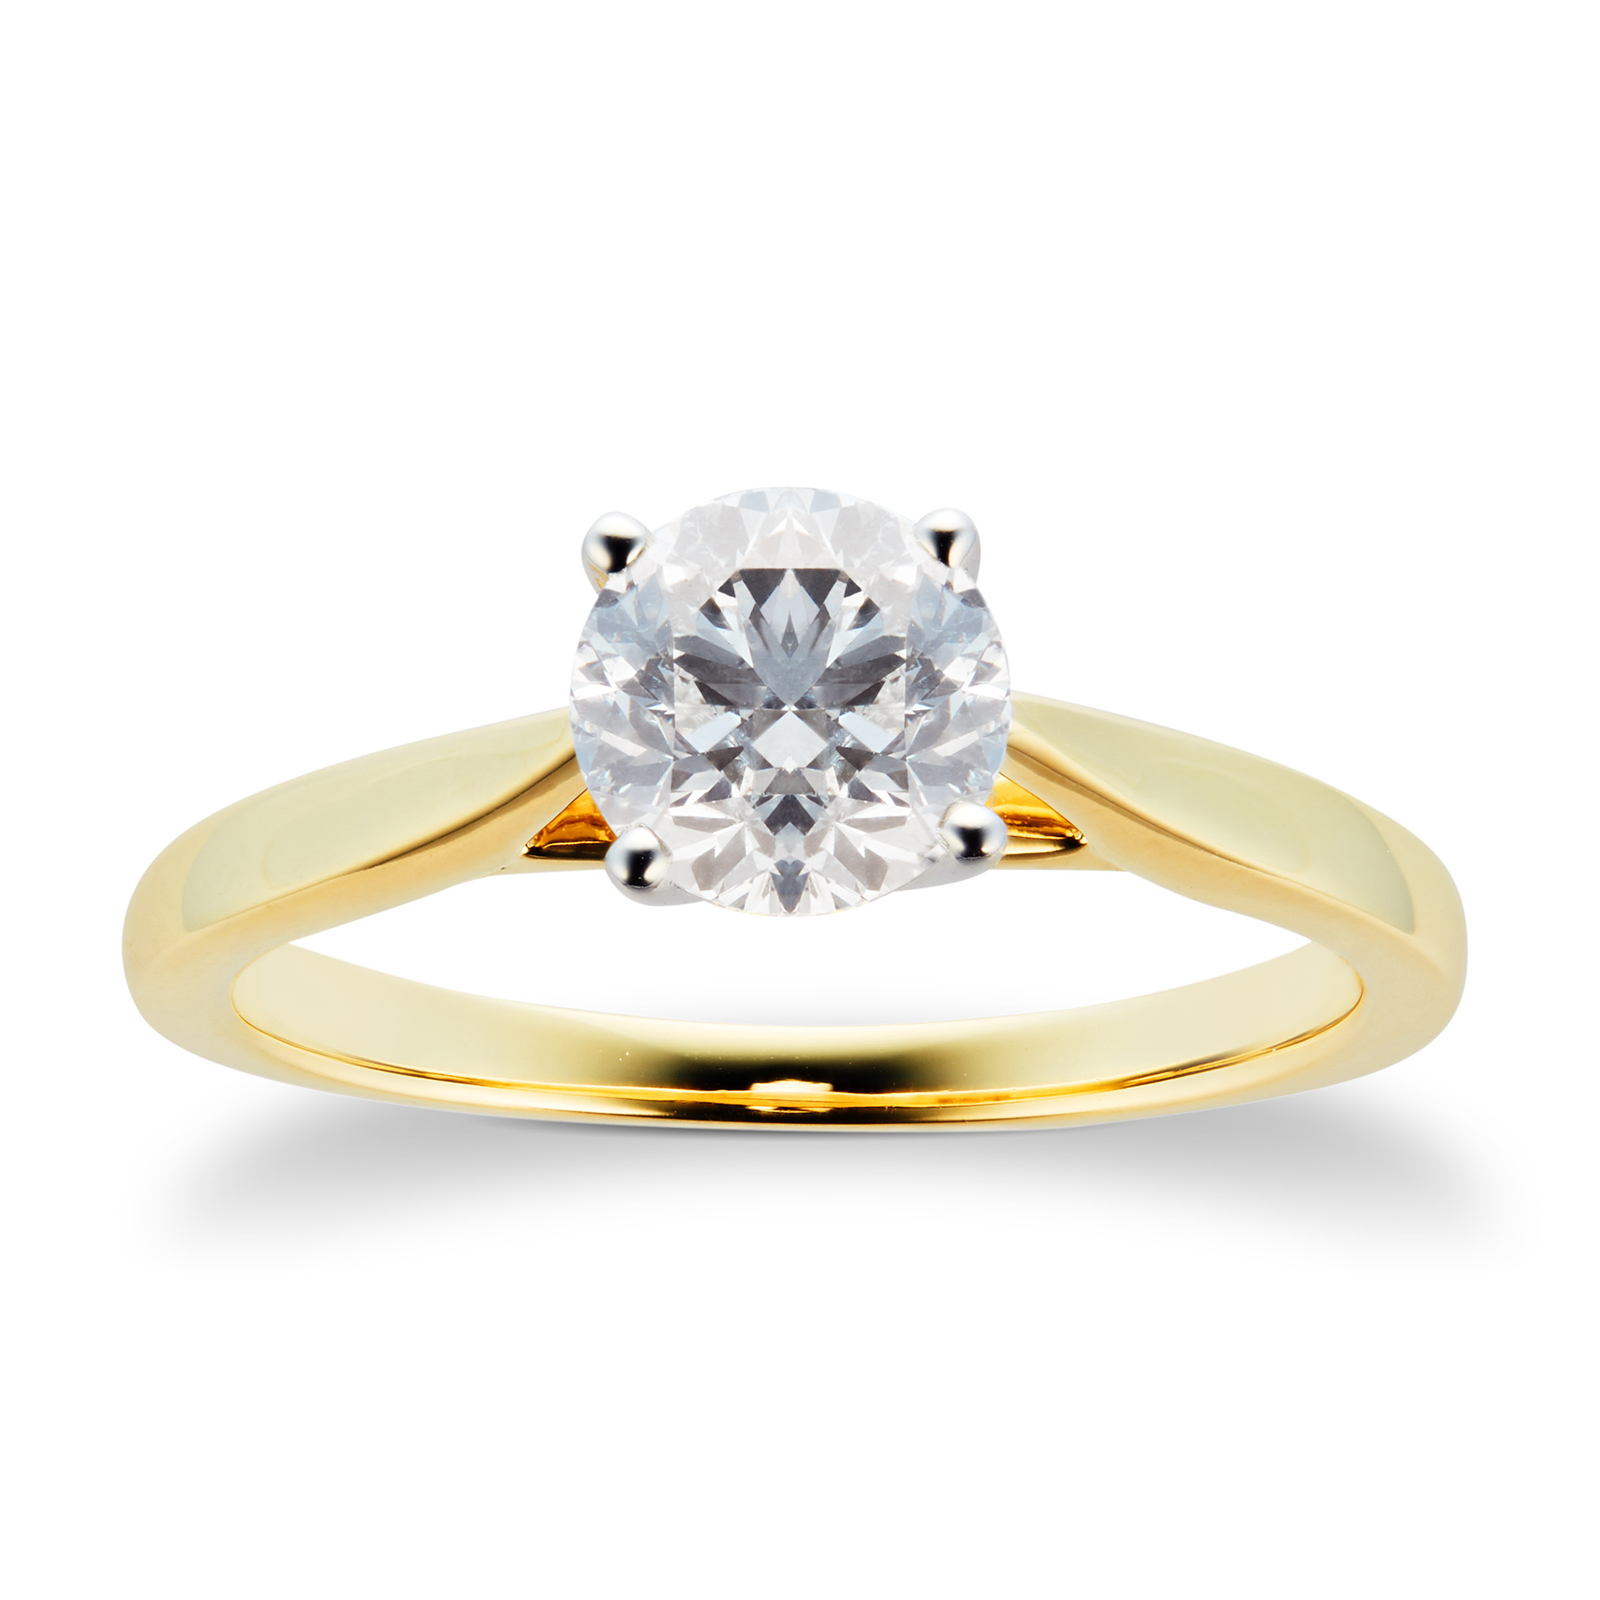 18ct Yellow Gold Brilliant Cut 1.00 Carat 88 Facet Diamond Ring - Ring Size J